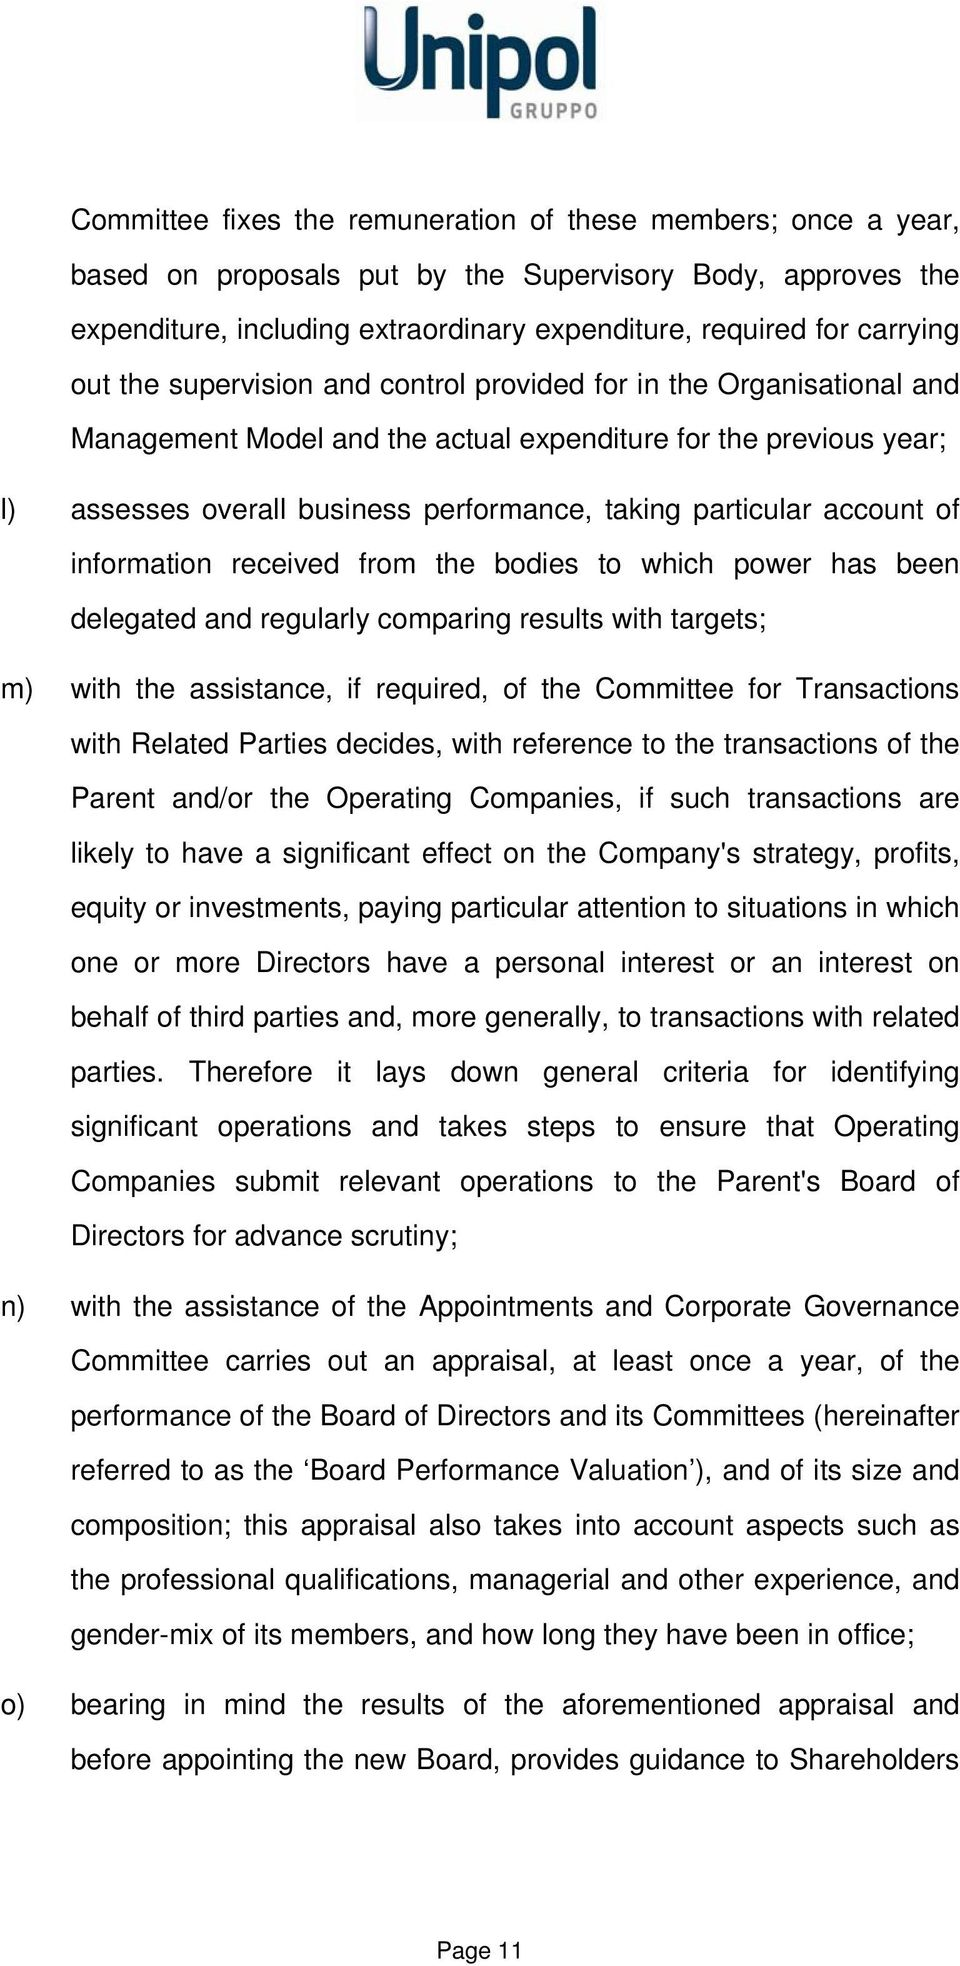 account of information received from the bodies to which power has been delegated and regularly comparing results with targets; m) with the assistance, if required, of the Committee for Transactions